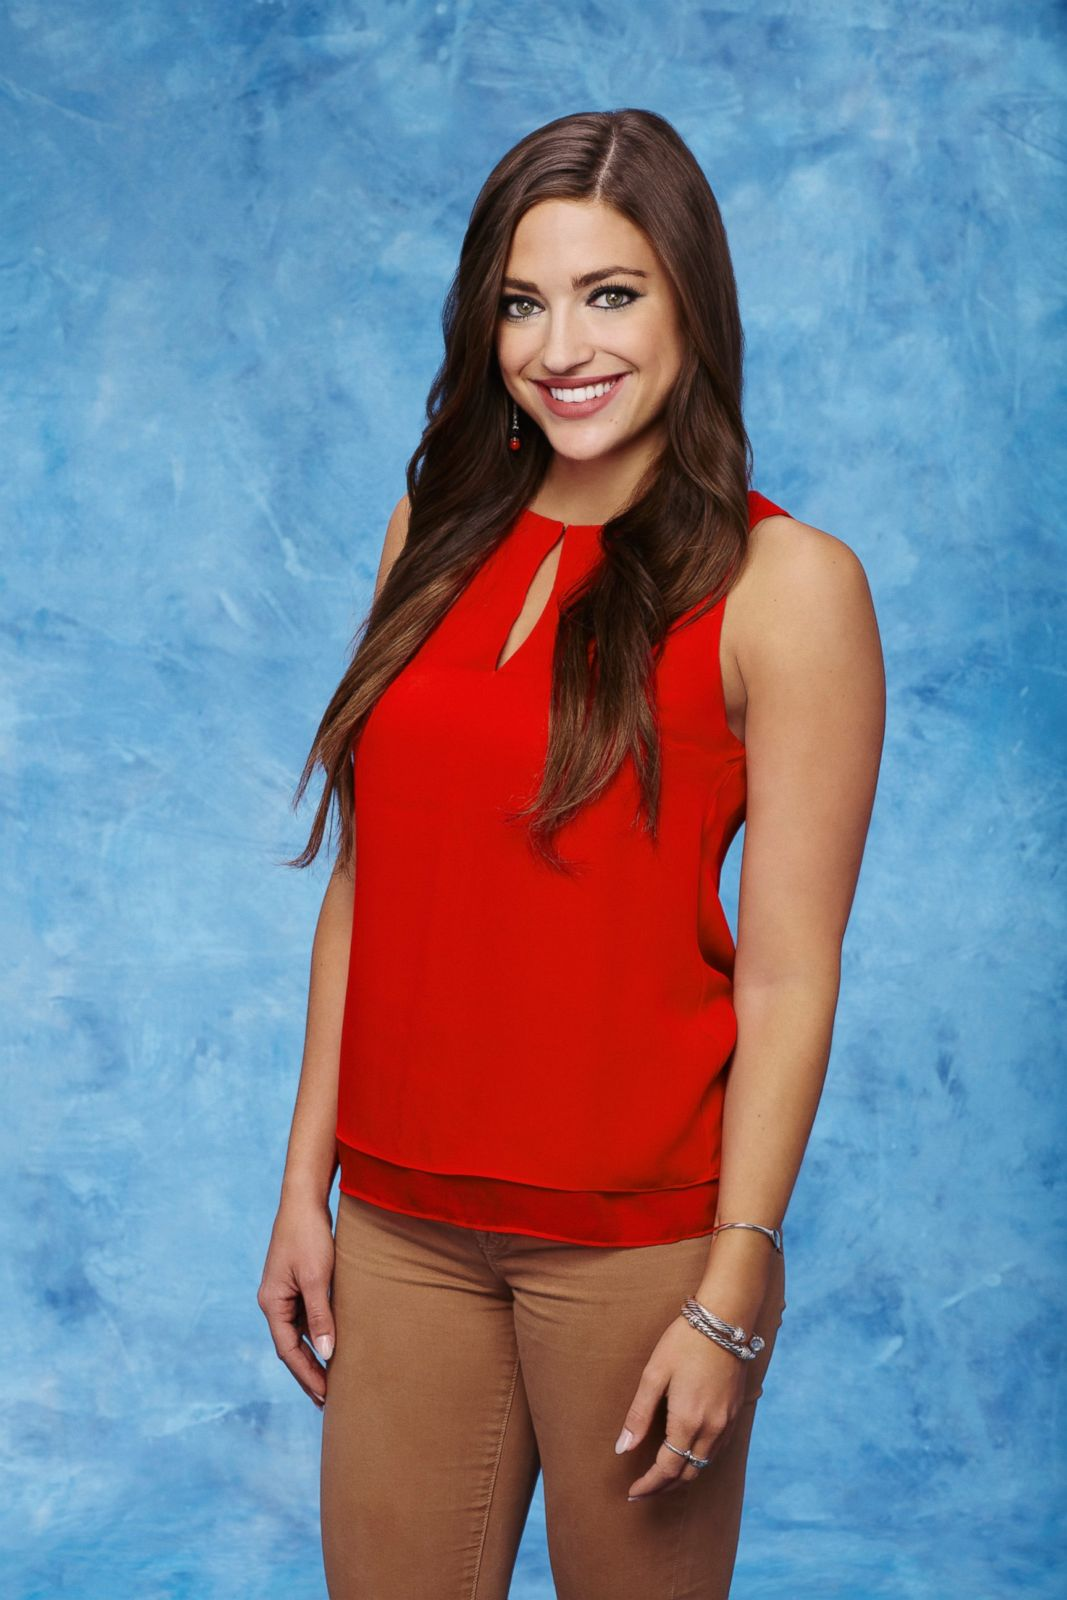 Picture | Meet the 28 Women on 'The Bachelor' 2016 - ABC News